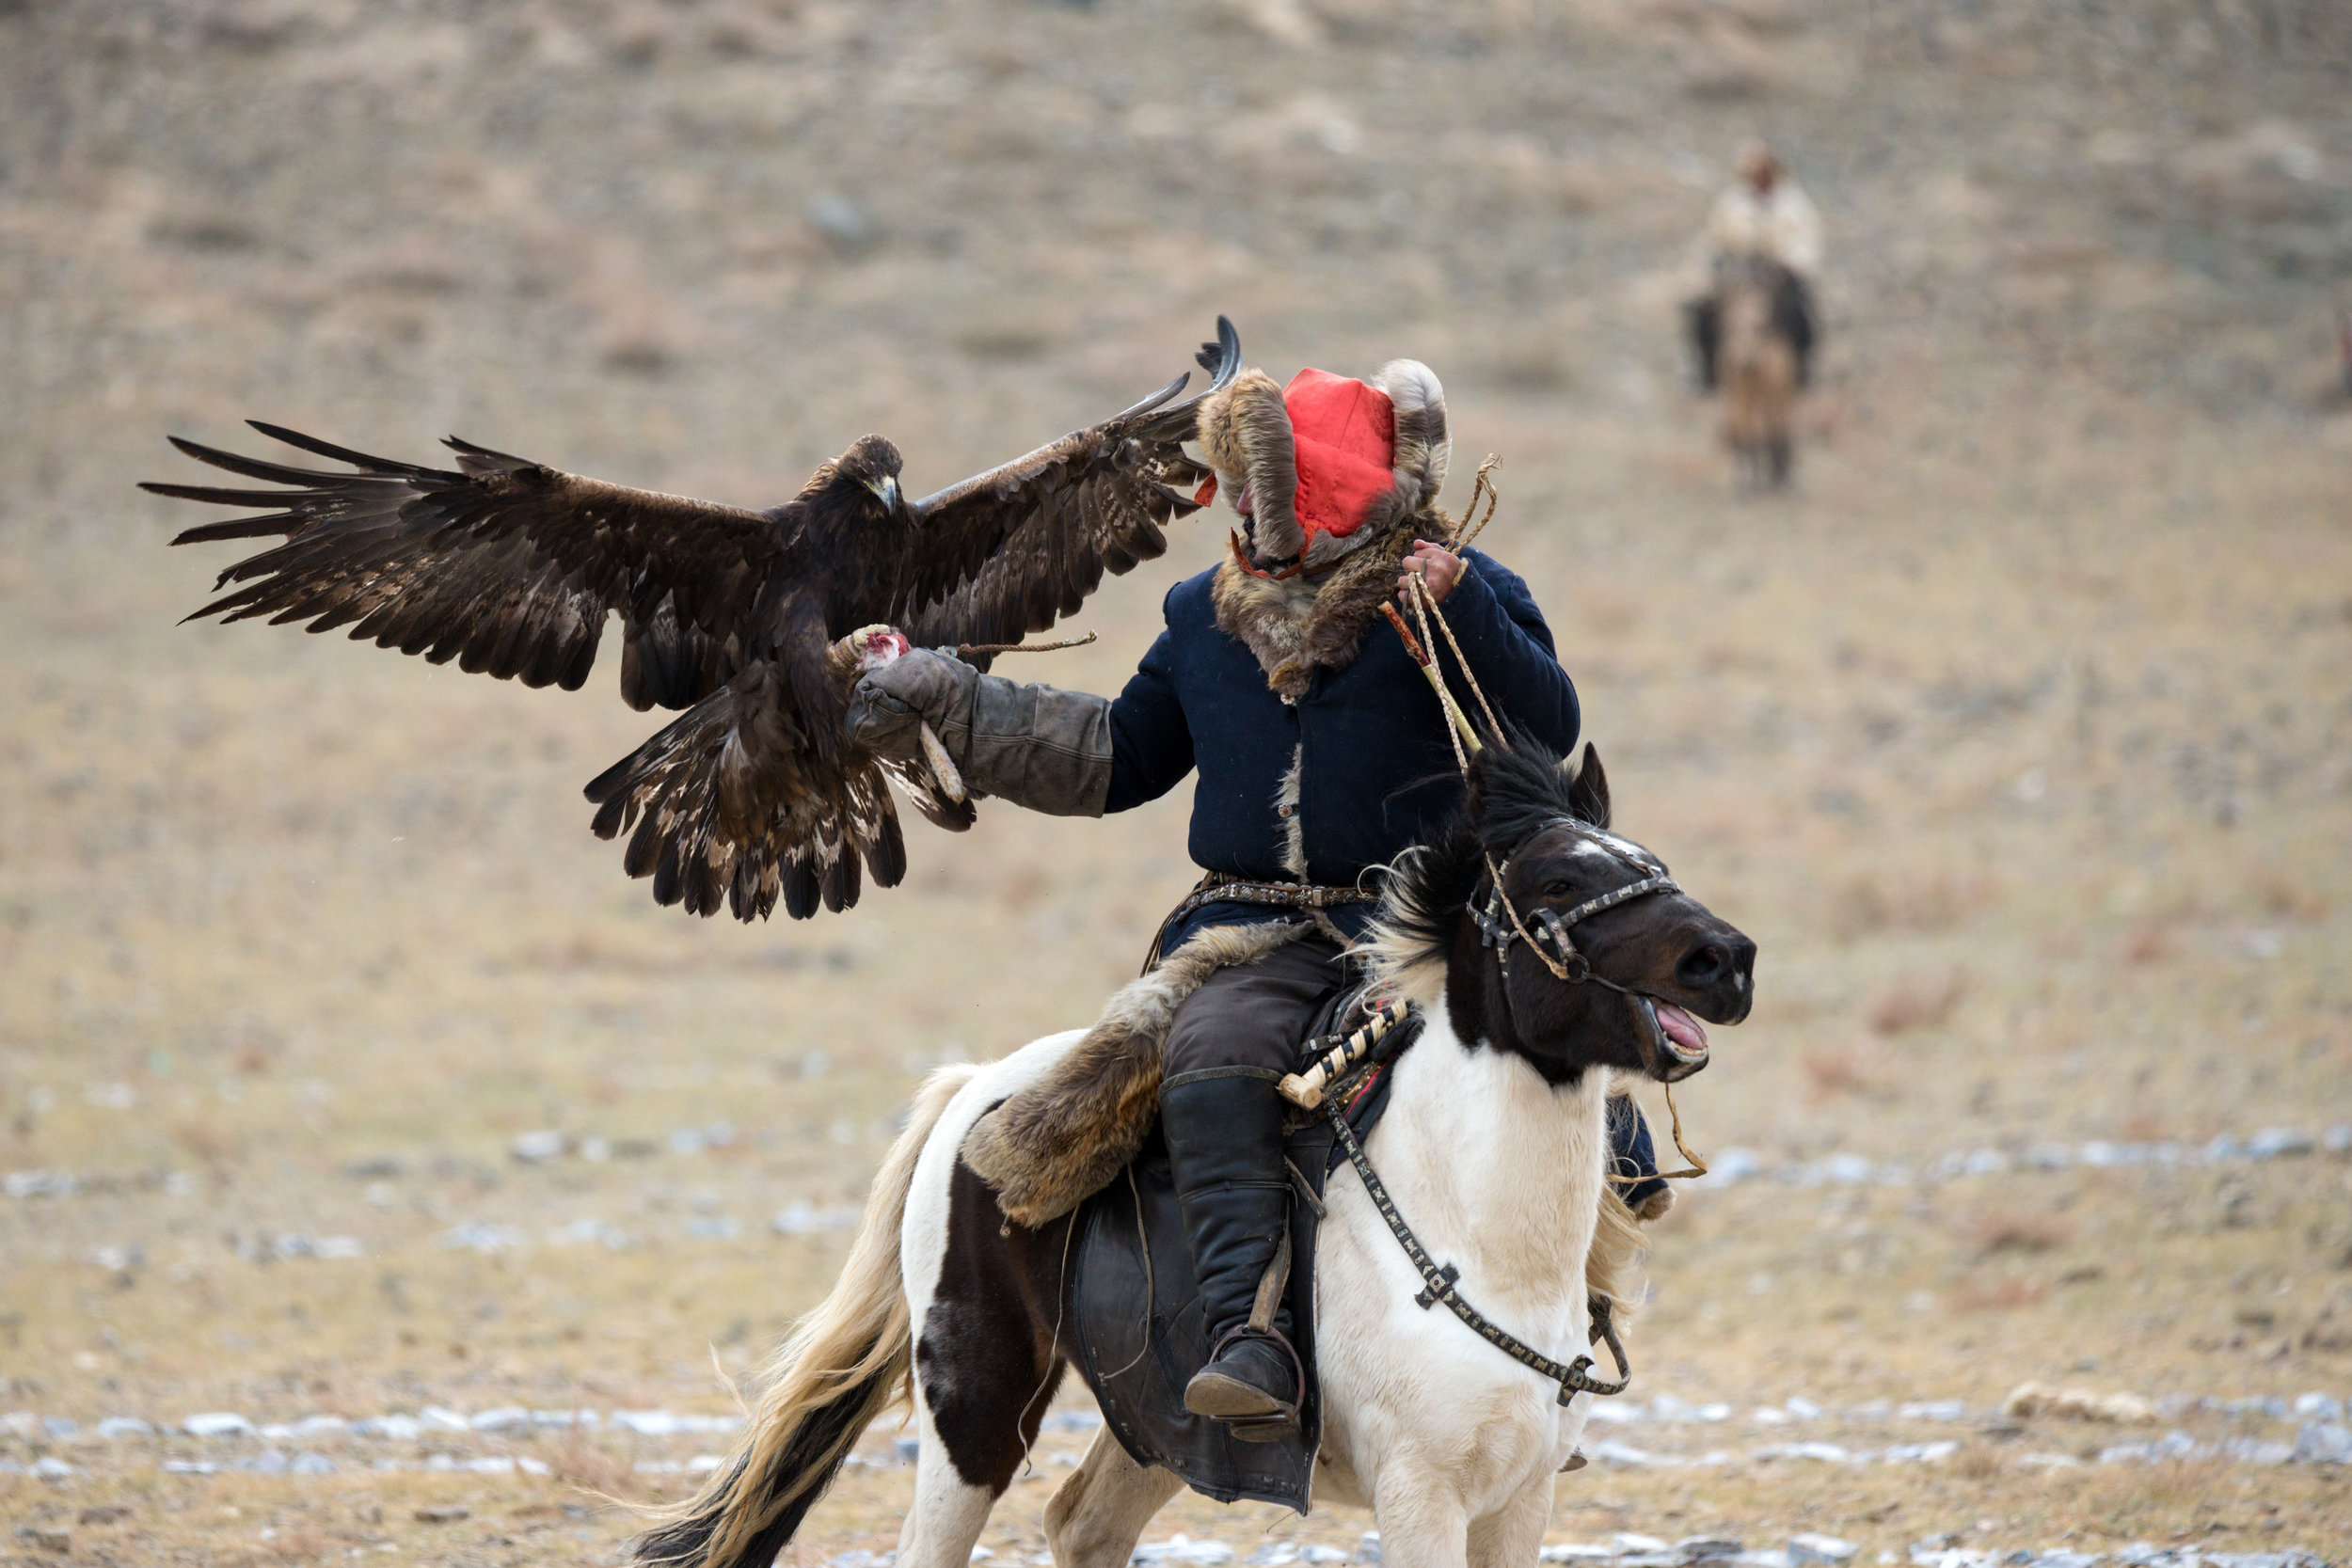 One of the games played at the Altai Festival where the hunter must call his Eagle to his hand